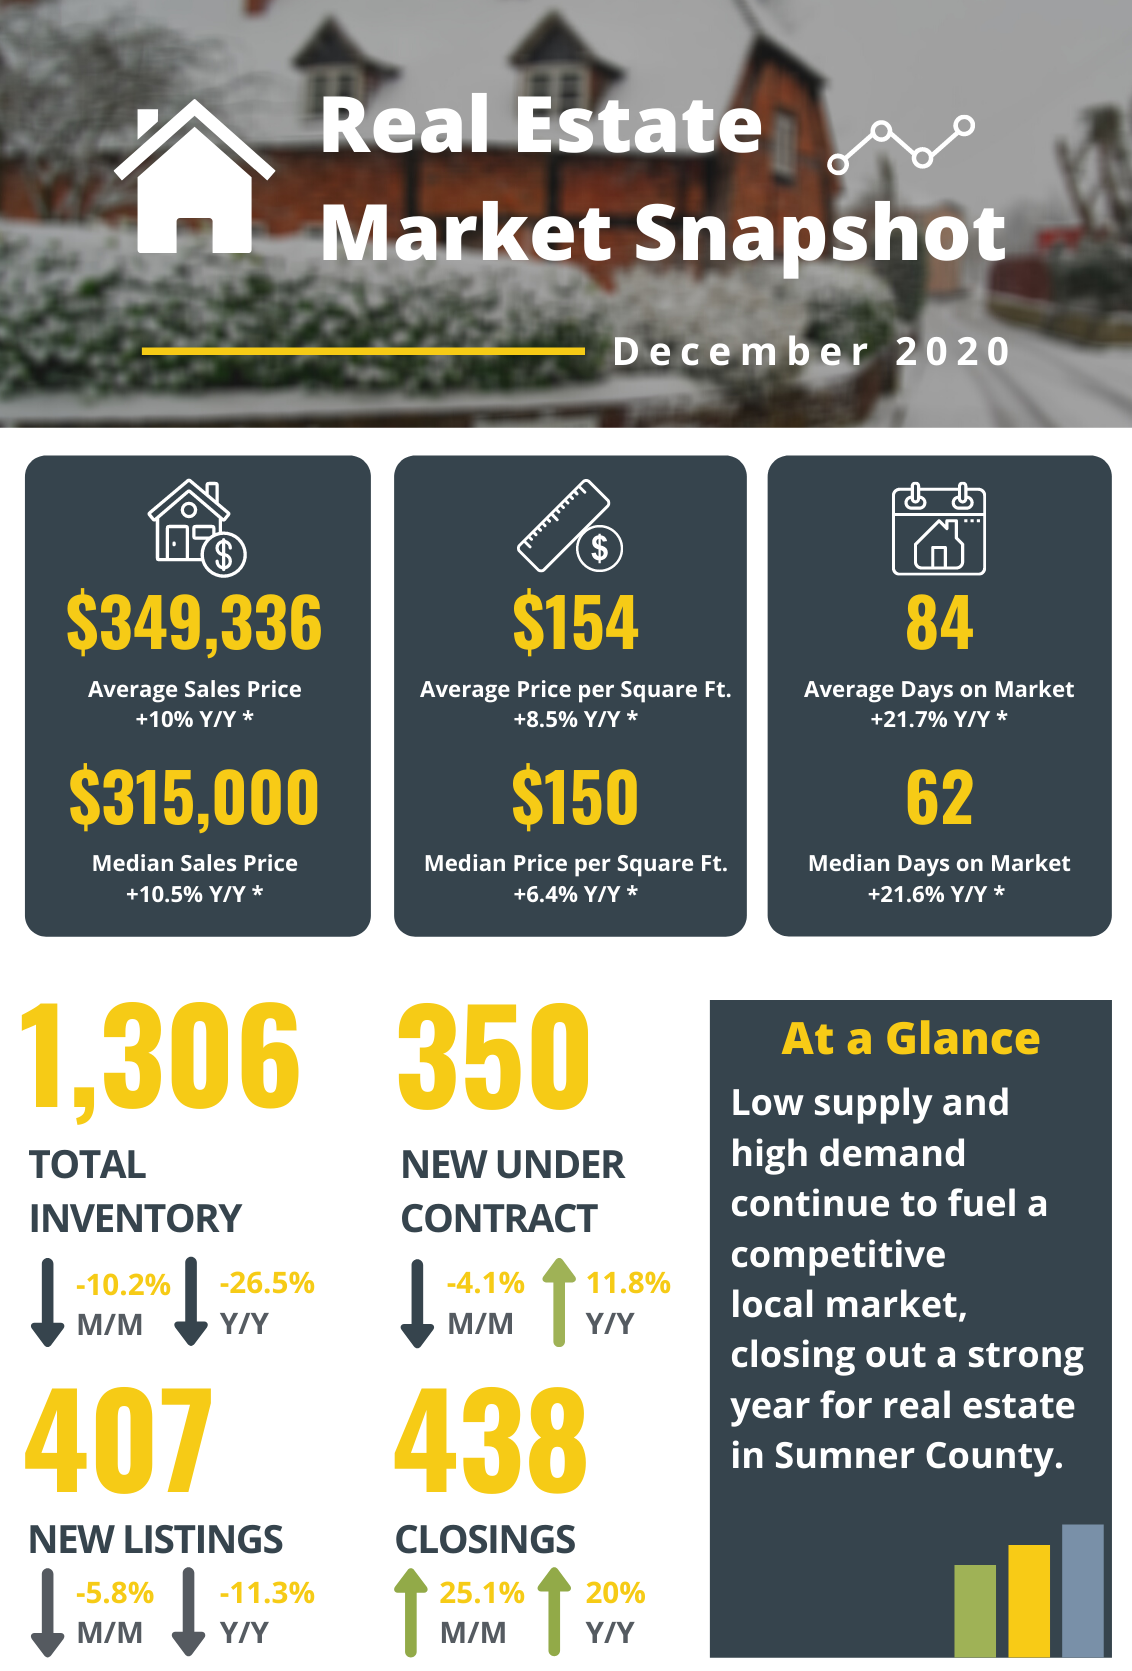 Real estate market snapshot graphic that accompanies the press release to provide visual details.